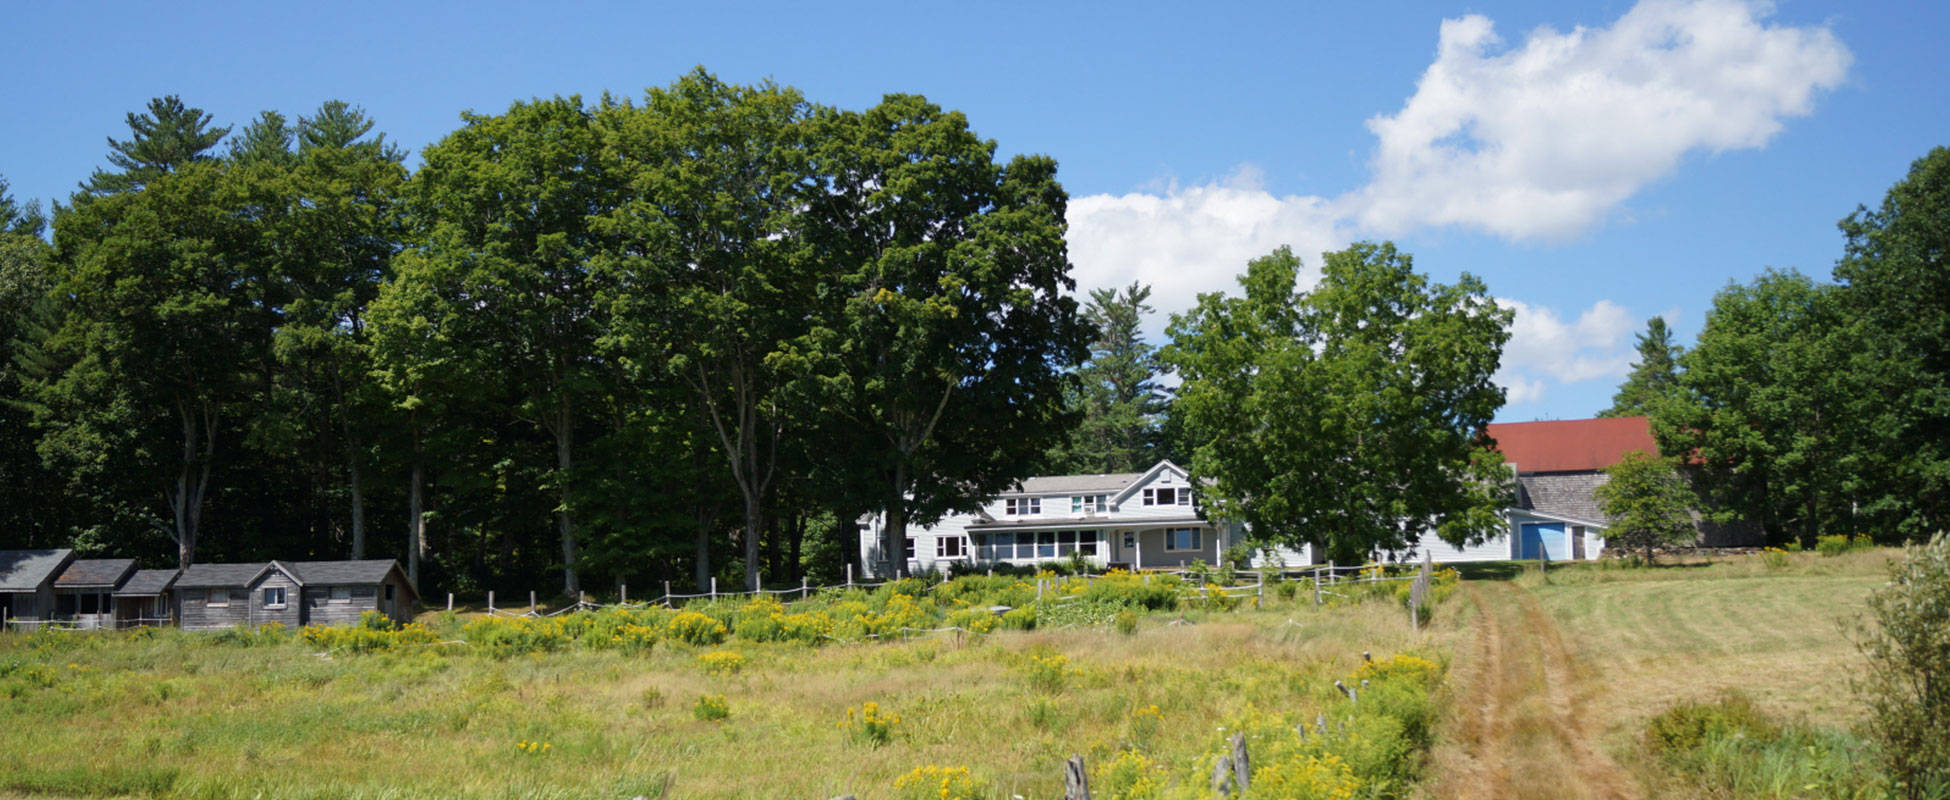 Maine Farmland Trust Announces Joseph A. Fiore Art Center A New Artist Residency Program In Jefferson, ME